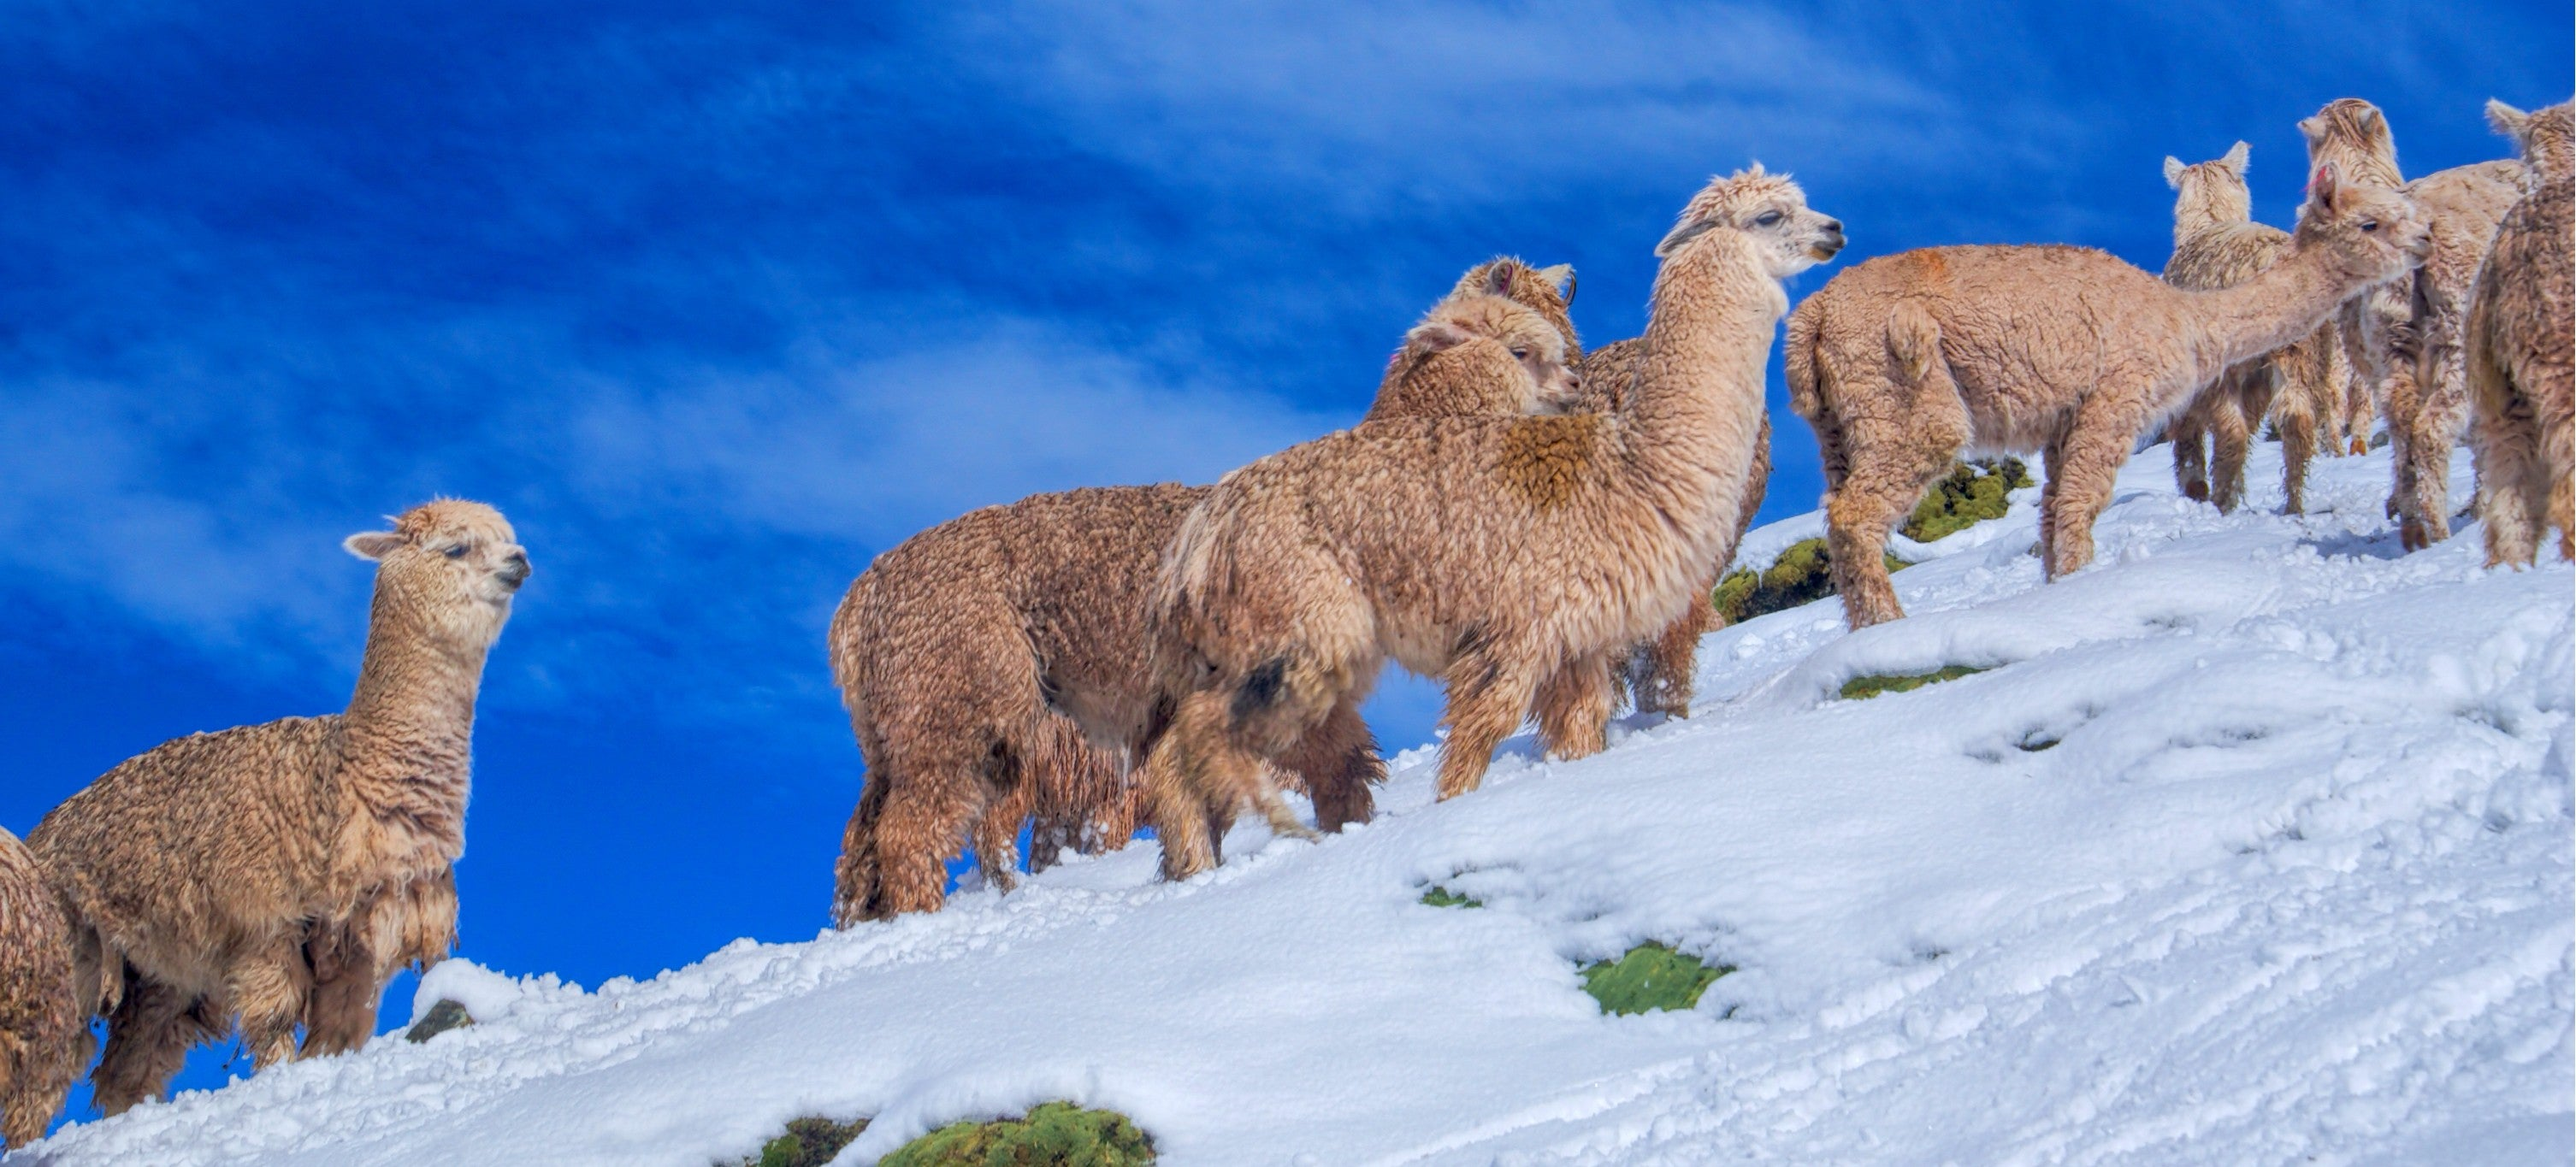 alpacas hiking the snow under a blue sky